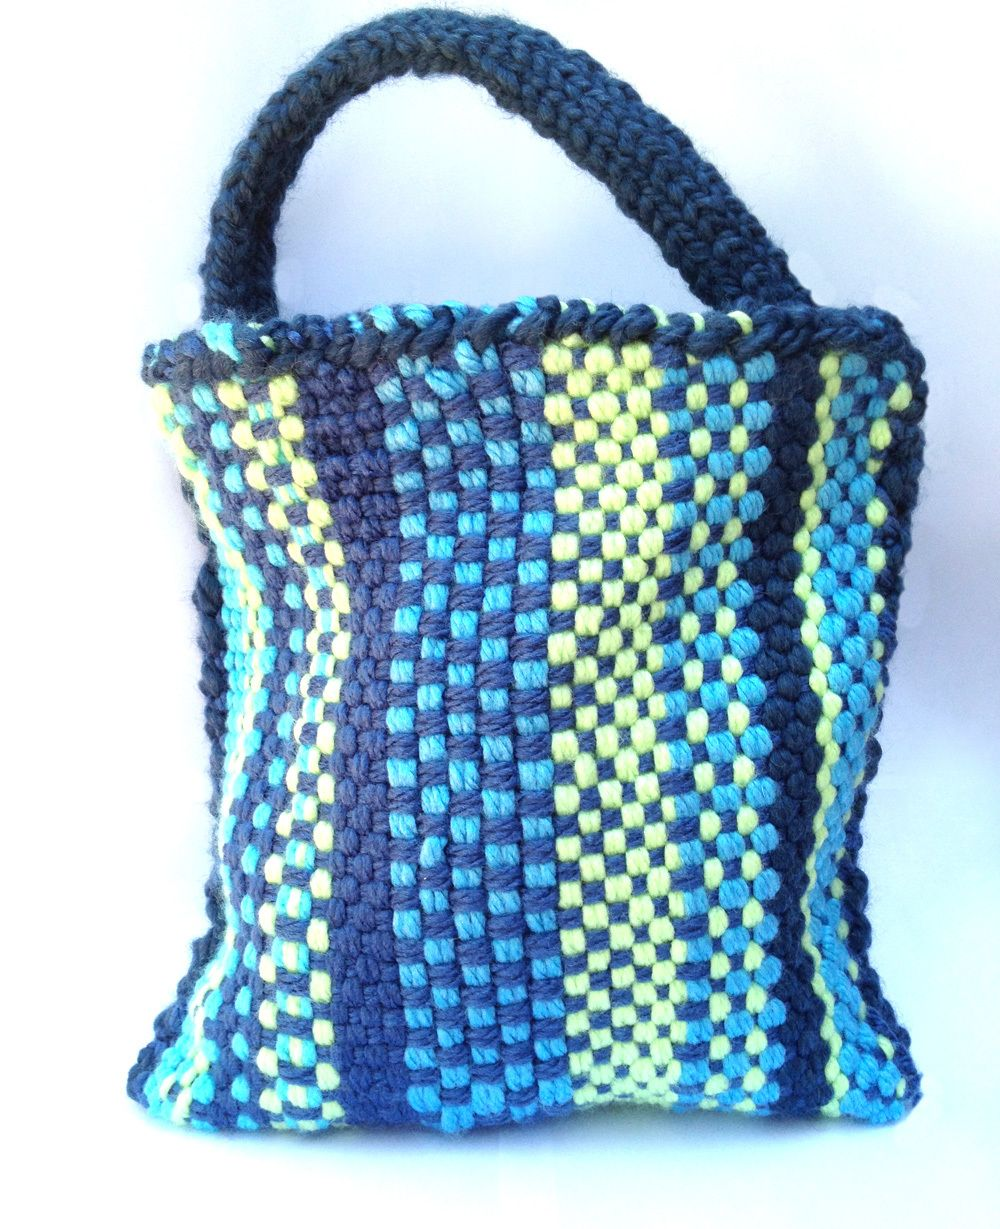 Woven Bag - loom knit | Loom Knit Bags Baskets Totes | Pinterest ...